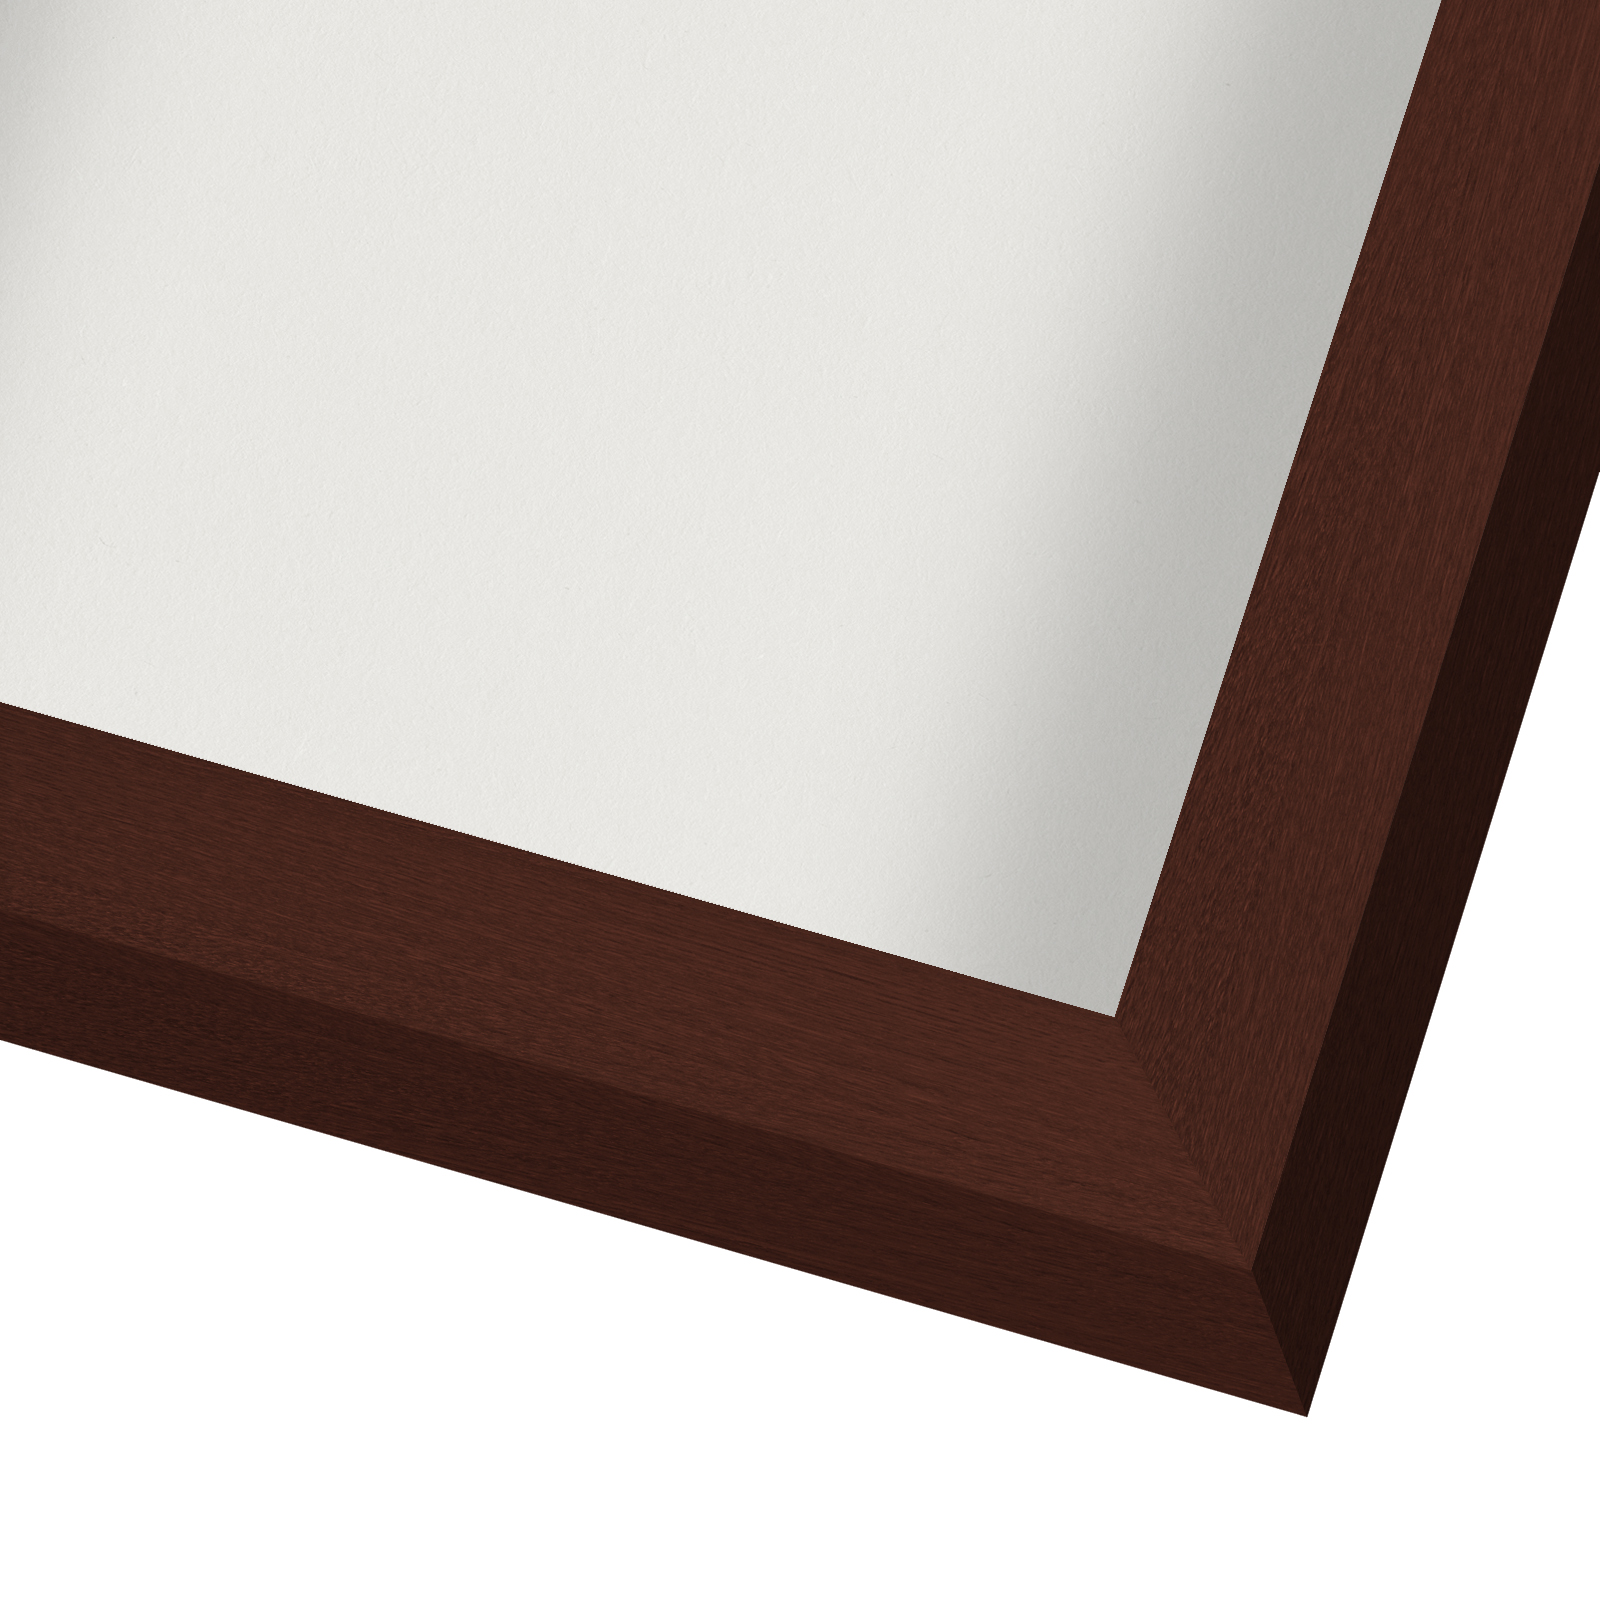 miniature 28 - Americanflat Shadow Box Frame with Soft Linen Back - Variety of Sizes